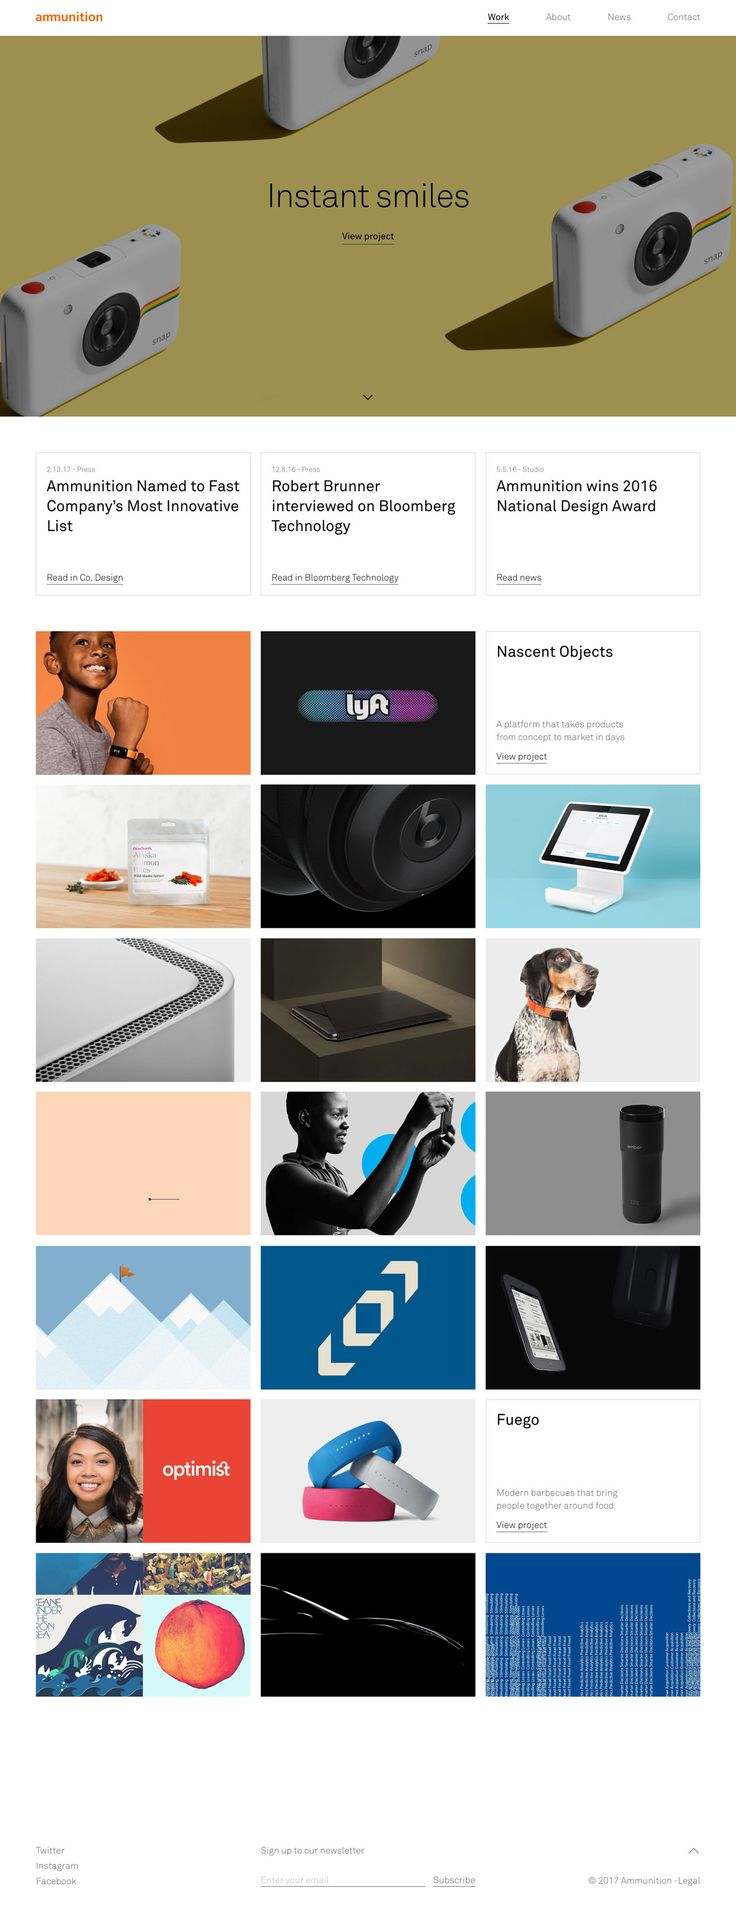 Ammunition Group http://mindsparklemag.com/website/ammunition-group/ Ammunition Group is a design studio dedicated to bringing products and services that matter to market. Their website is awarded as site of the day.